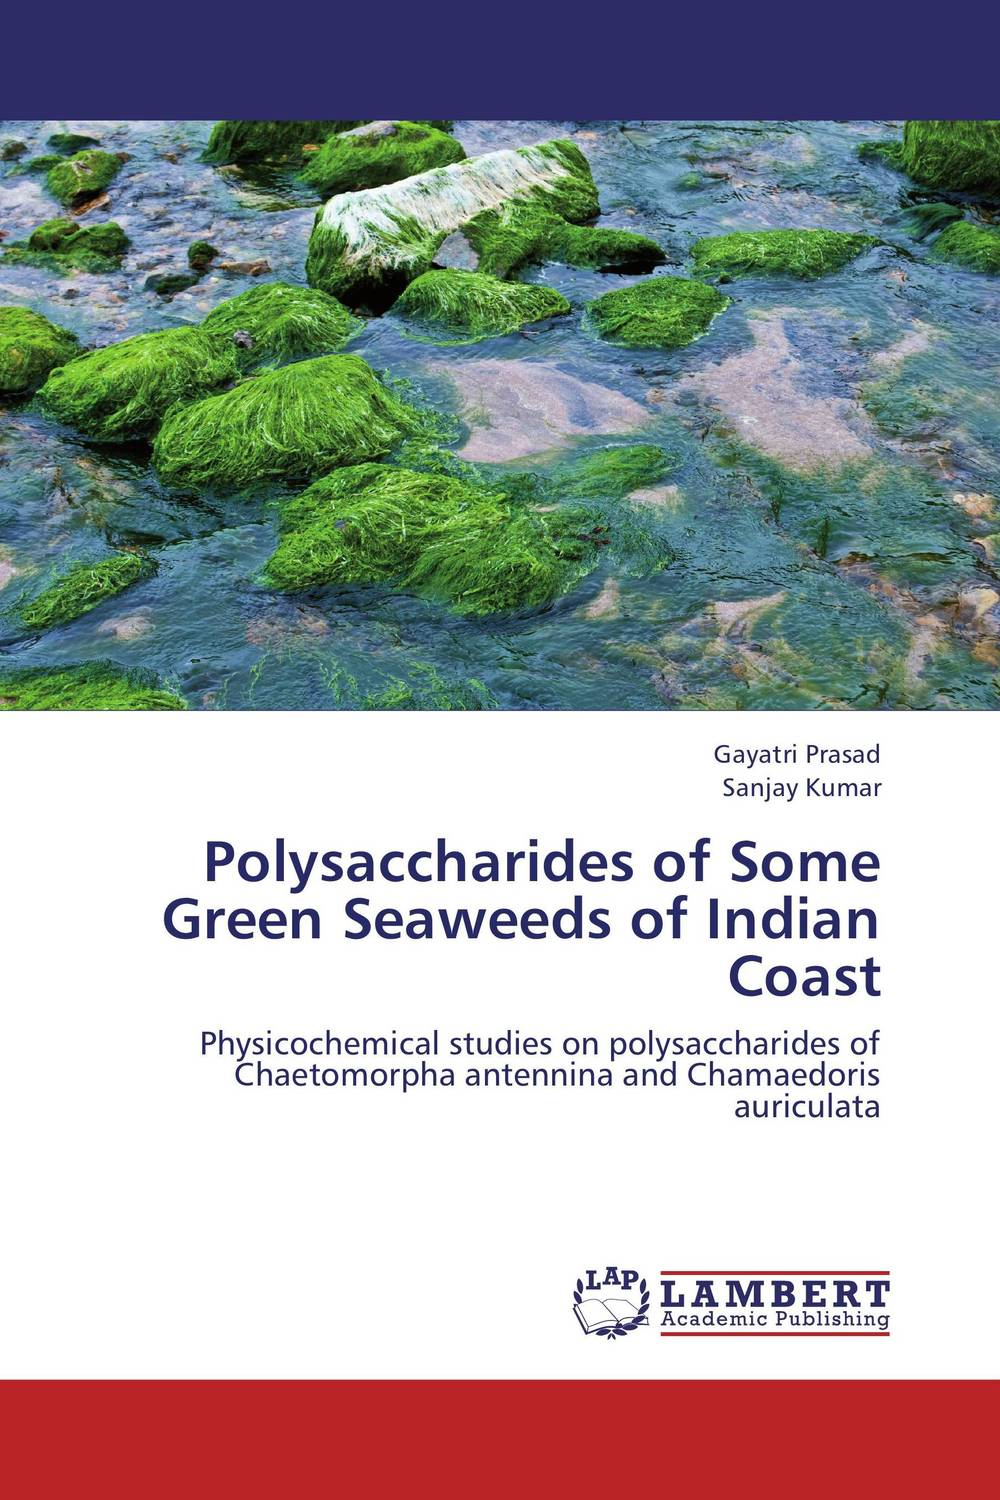 Polysaccharides of Some Green Seaweeds of Indian Coast